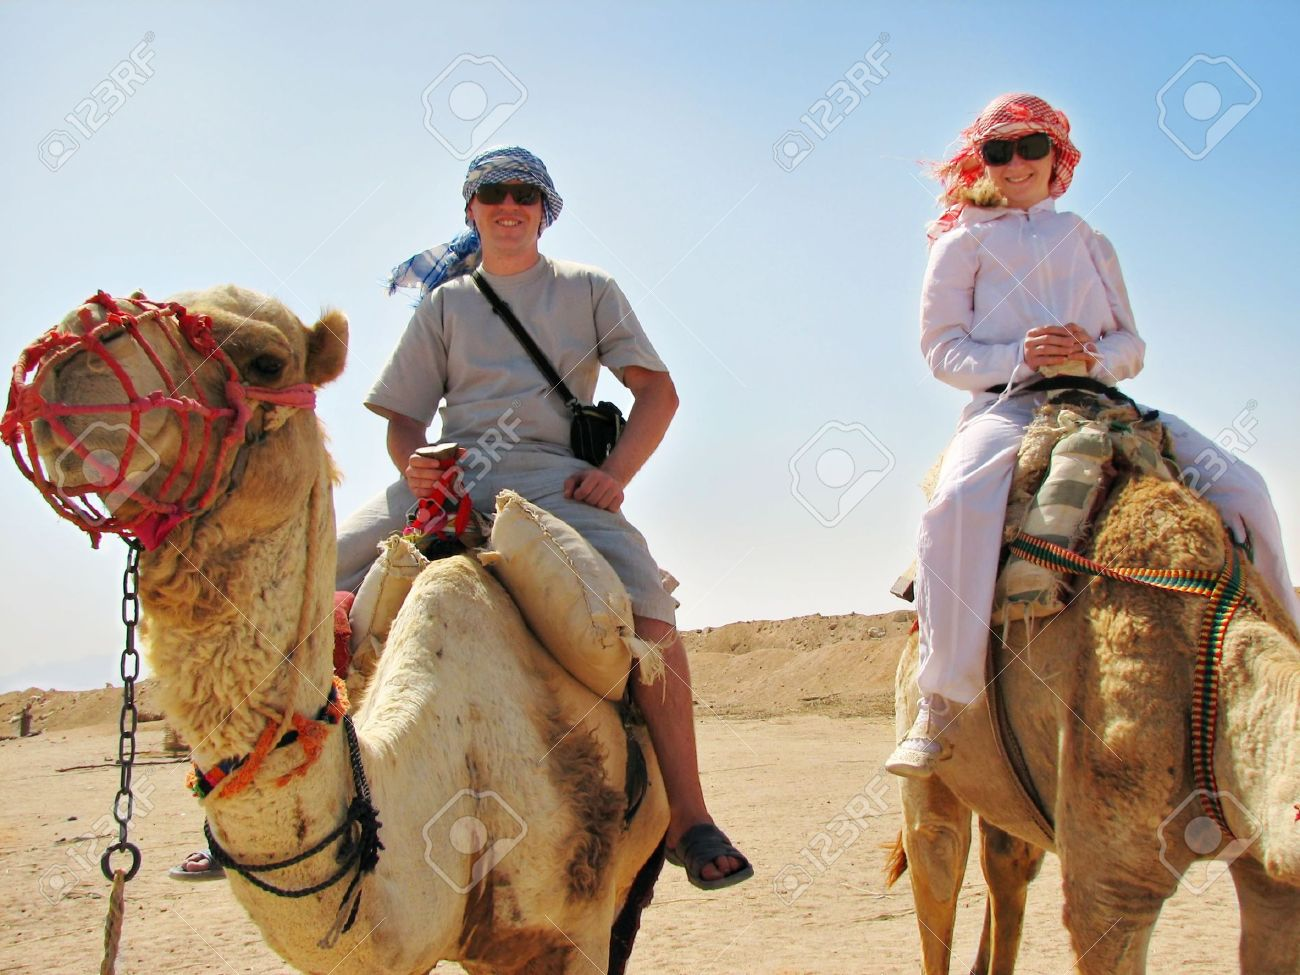 essay on desert animal camel The camel essay in english, easy camel school essay the camel essay in english subject: write an english essay on the camel in your words complexity: easy: grade.